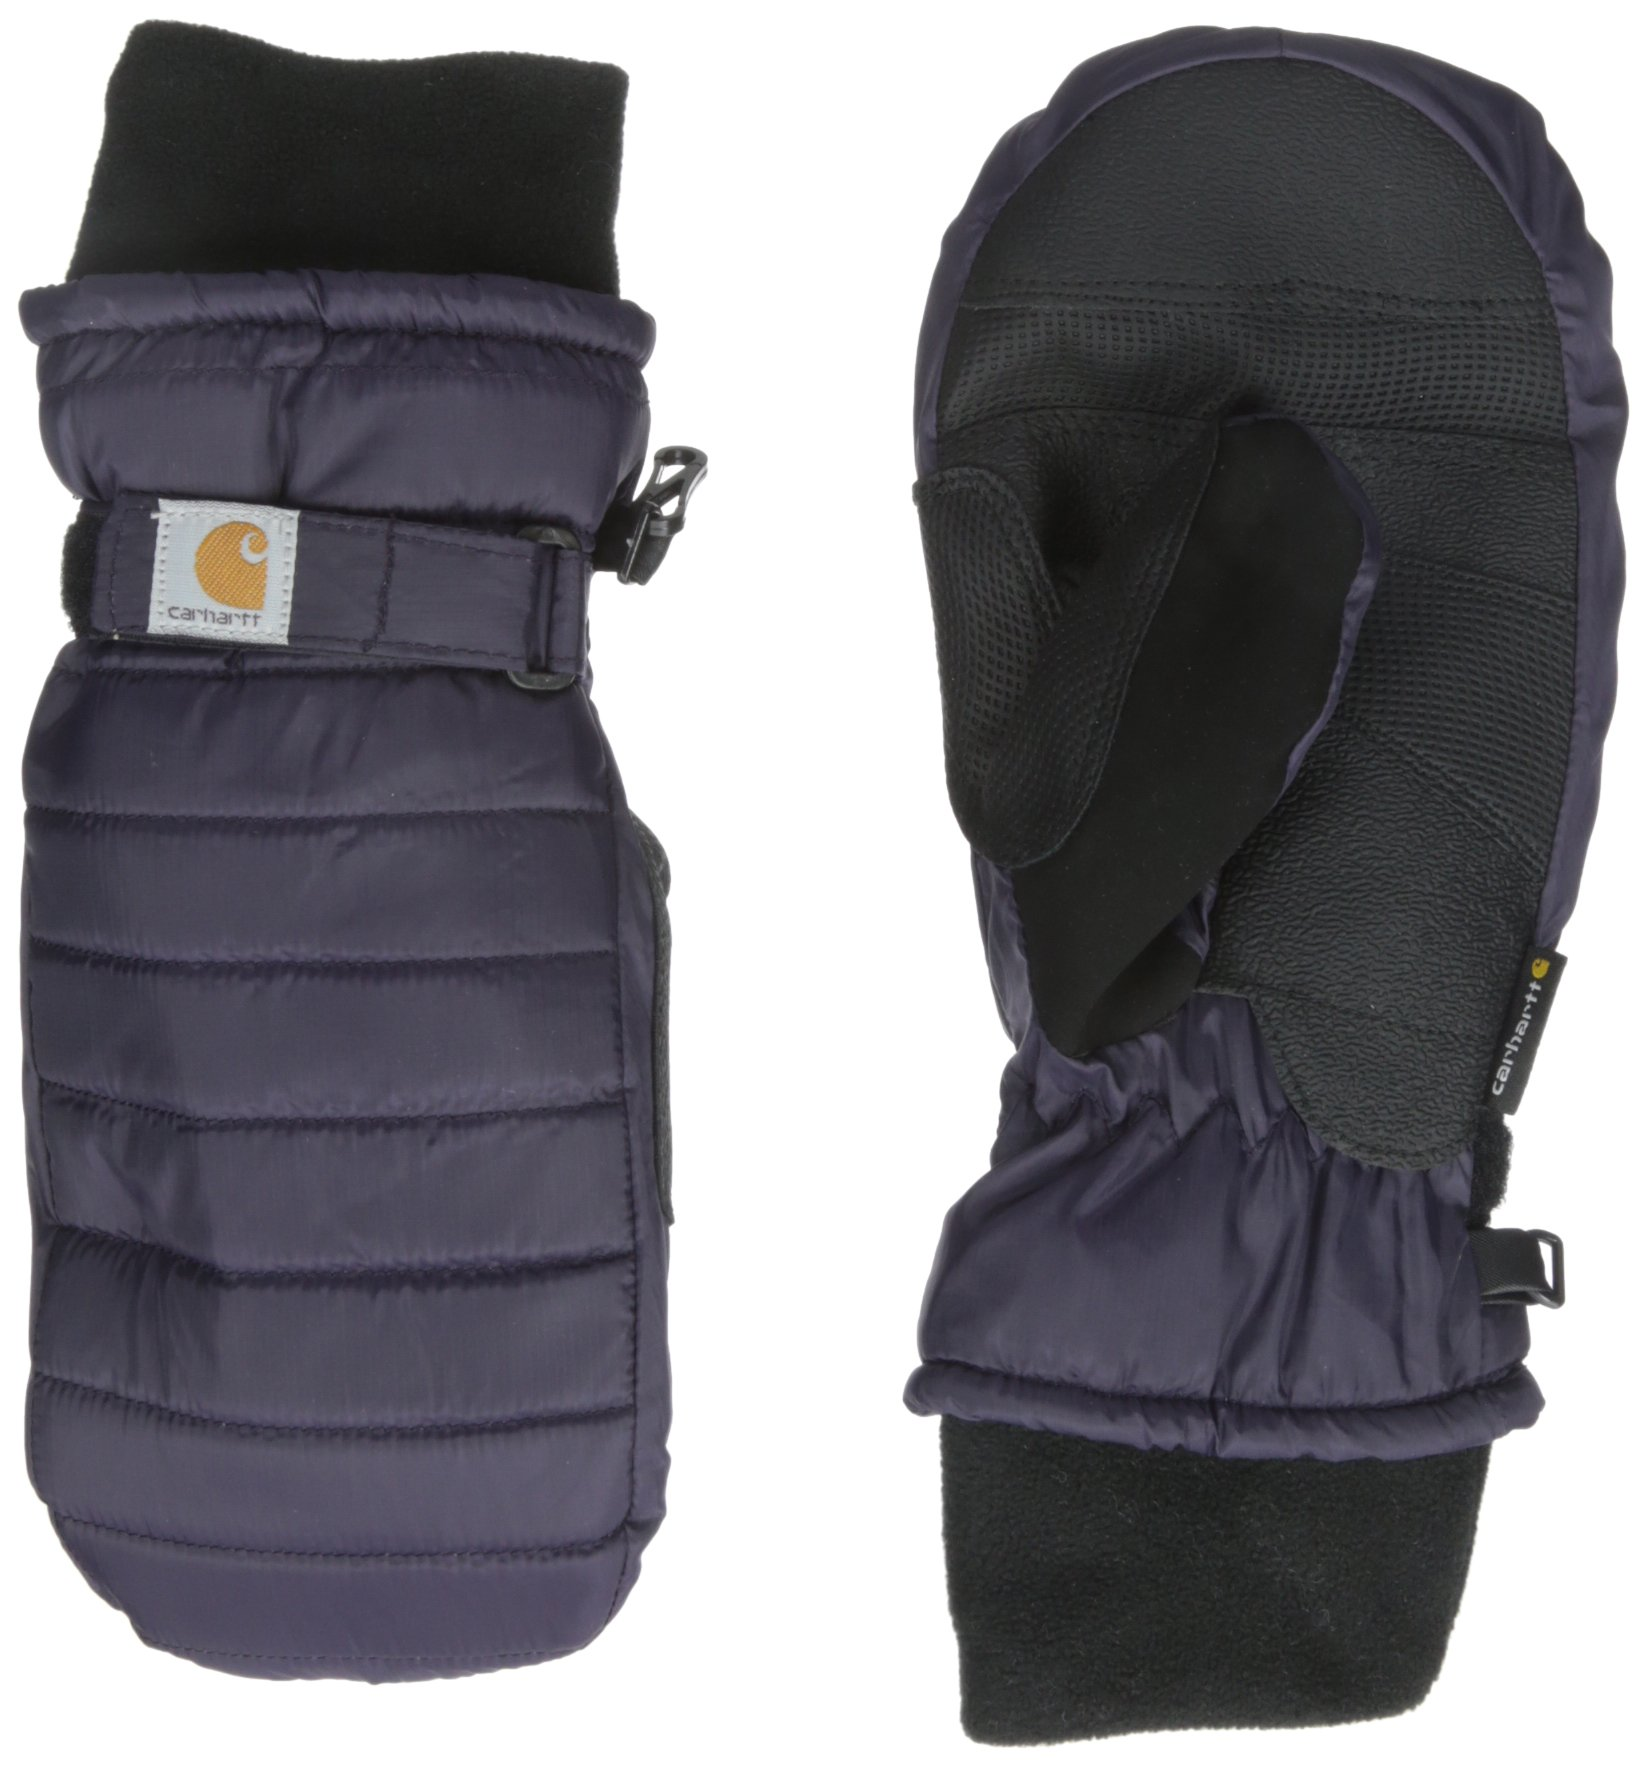 Carhartt Women's Quilts Insulated Breathable Mitt with Waterproof Wicking Insert, Nightshade, Medium